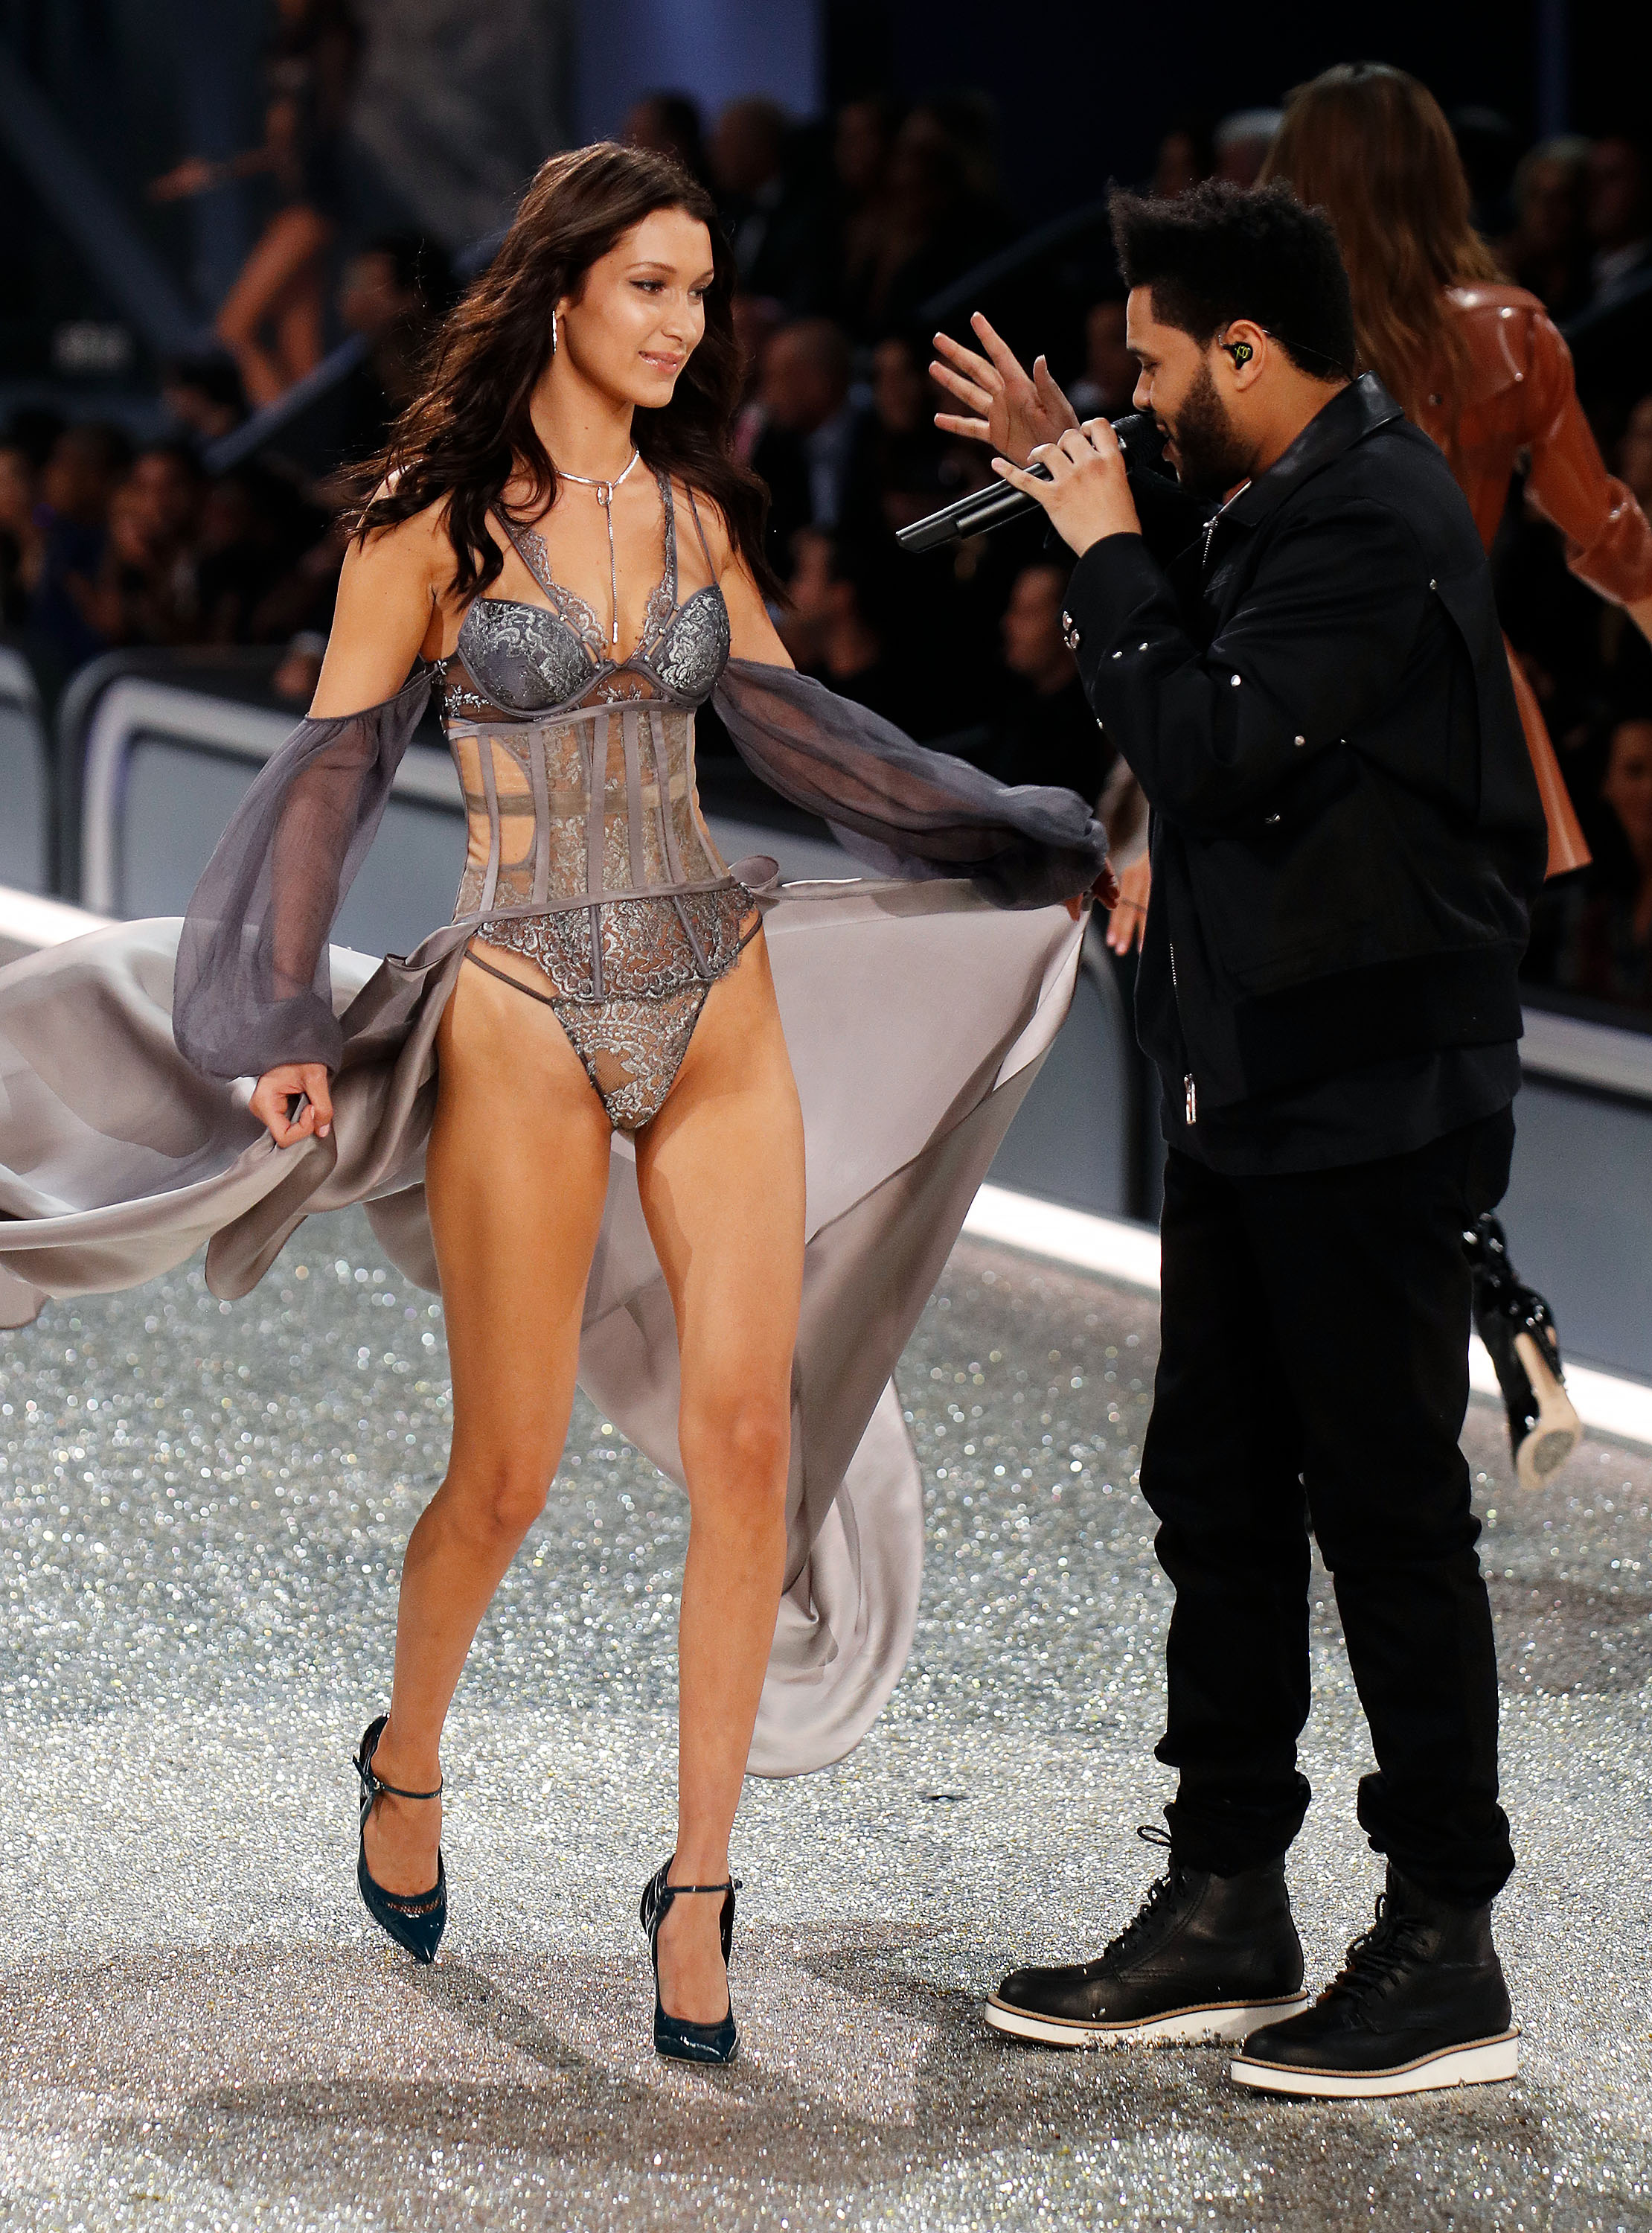 Bella approaches The Weeknd on her way down the runway. (Photo credit: Splash News)